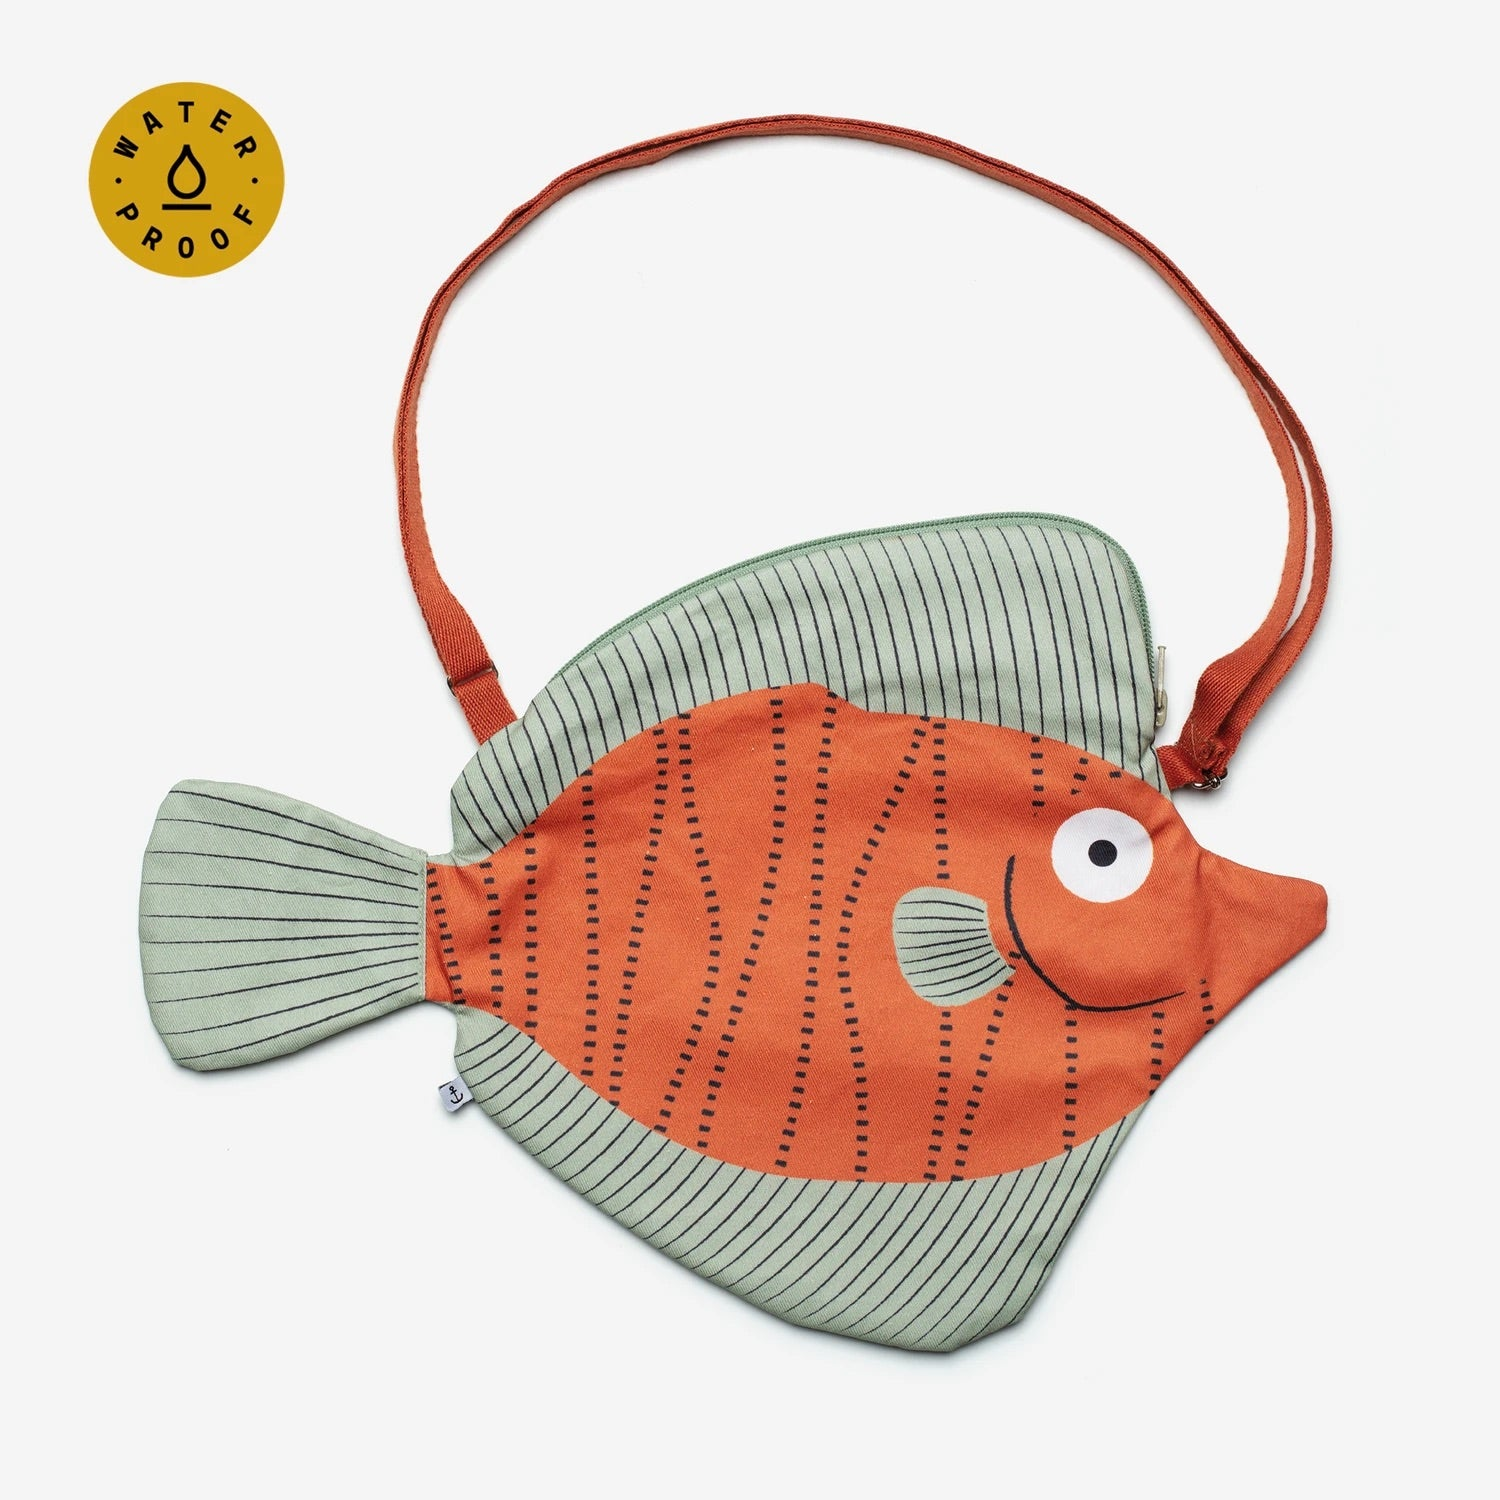 Adult or Kids Filefish - Bag